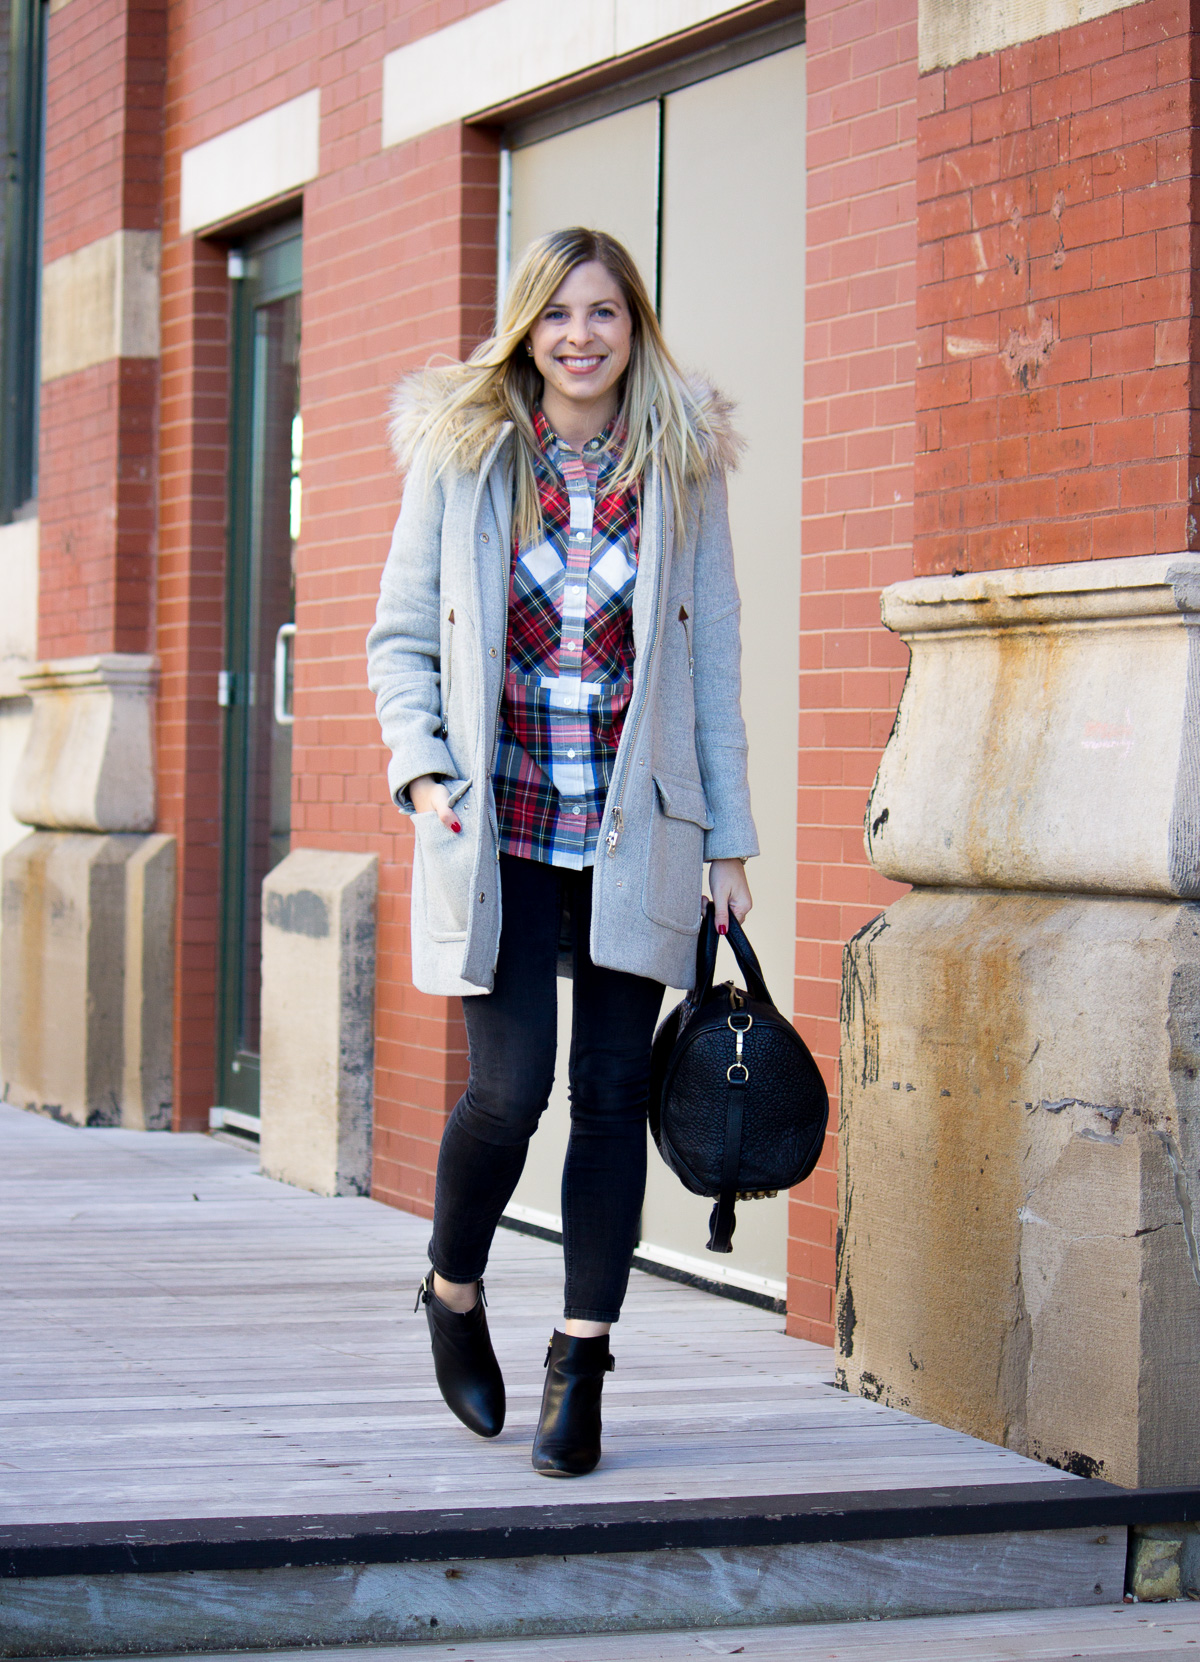 Cozy Plaid for the Holidays